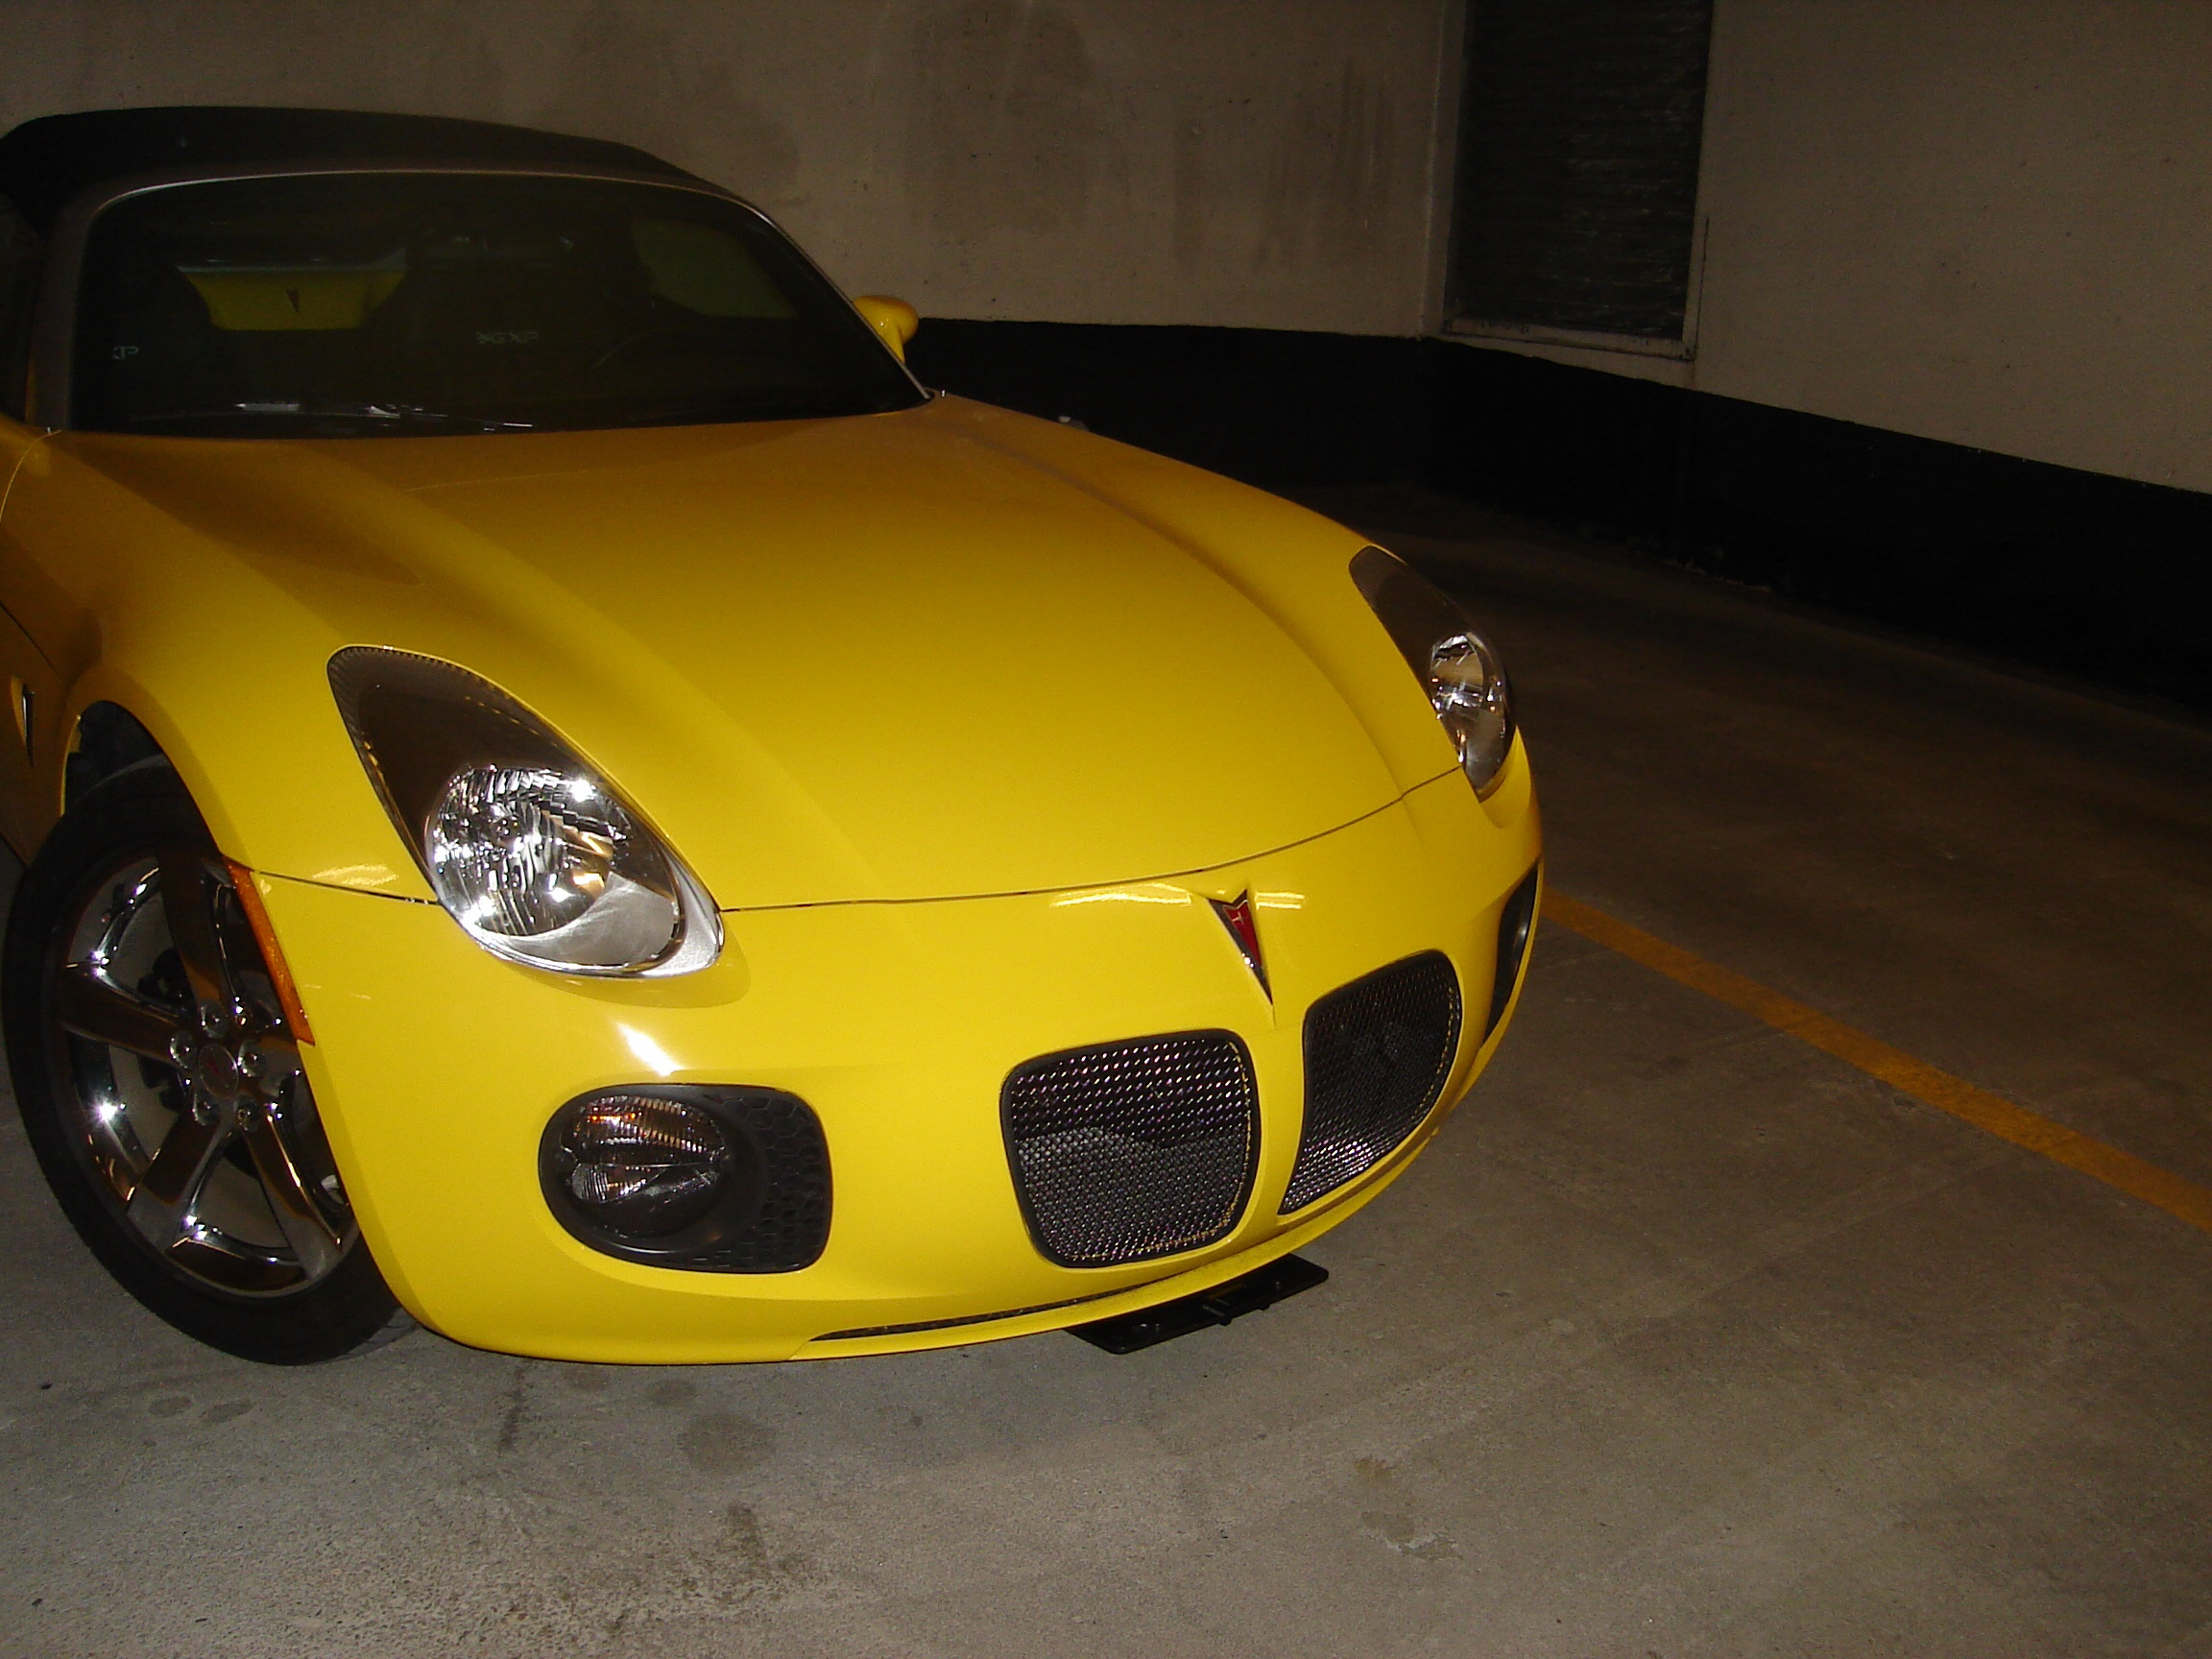 Northern California 2005 Pontiac Solstice 2 4l: Norm's GXP Front Splitter And Other Stuff!